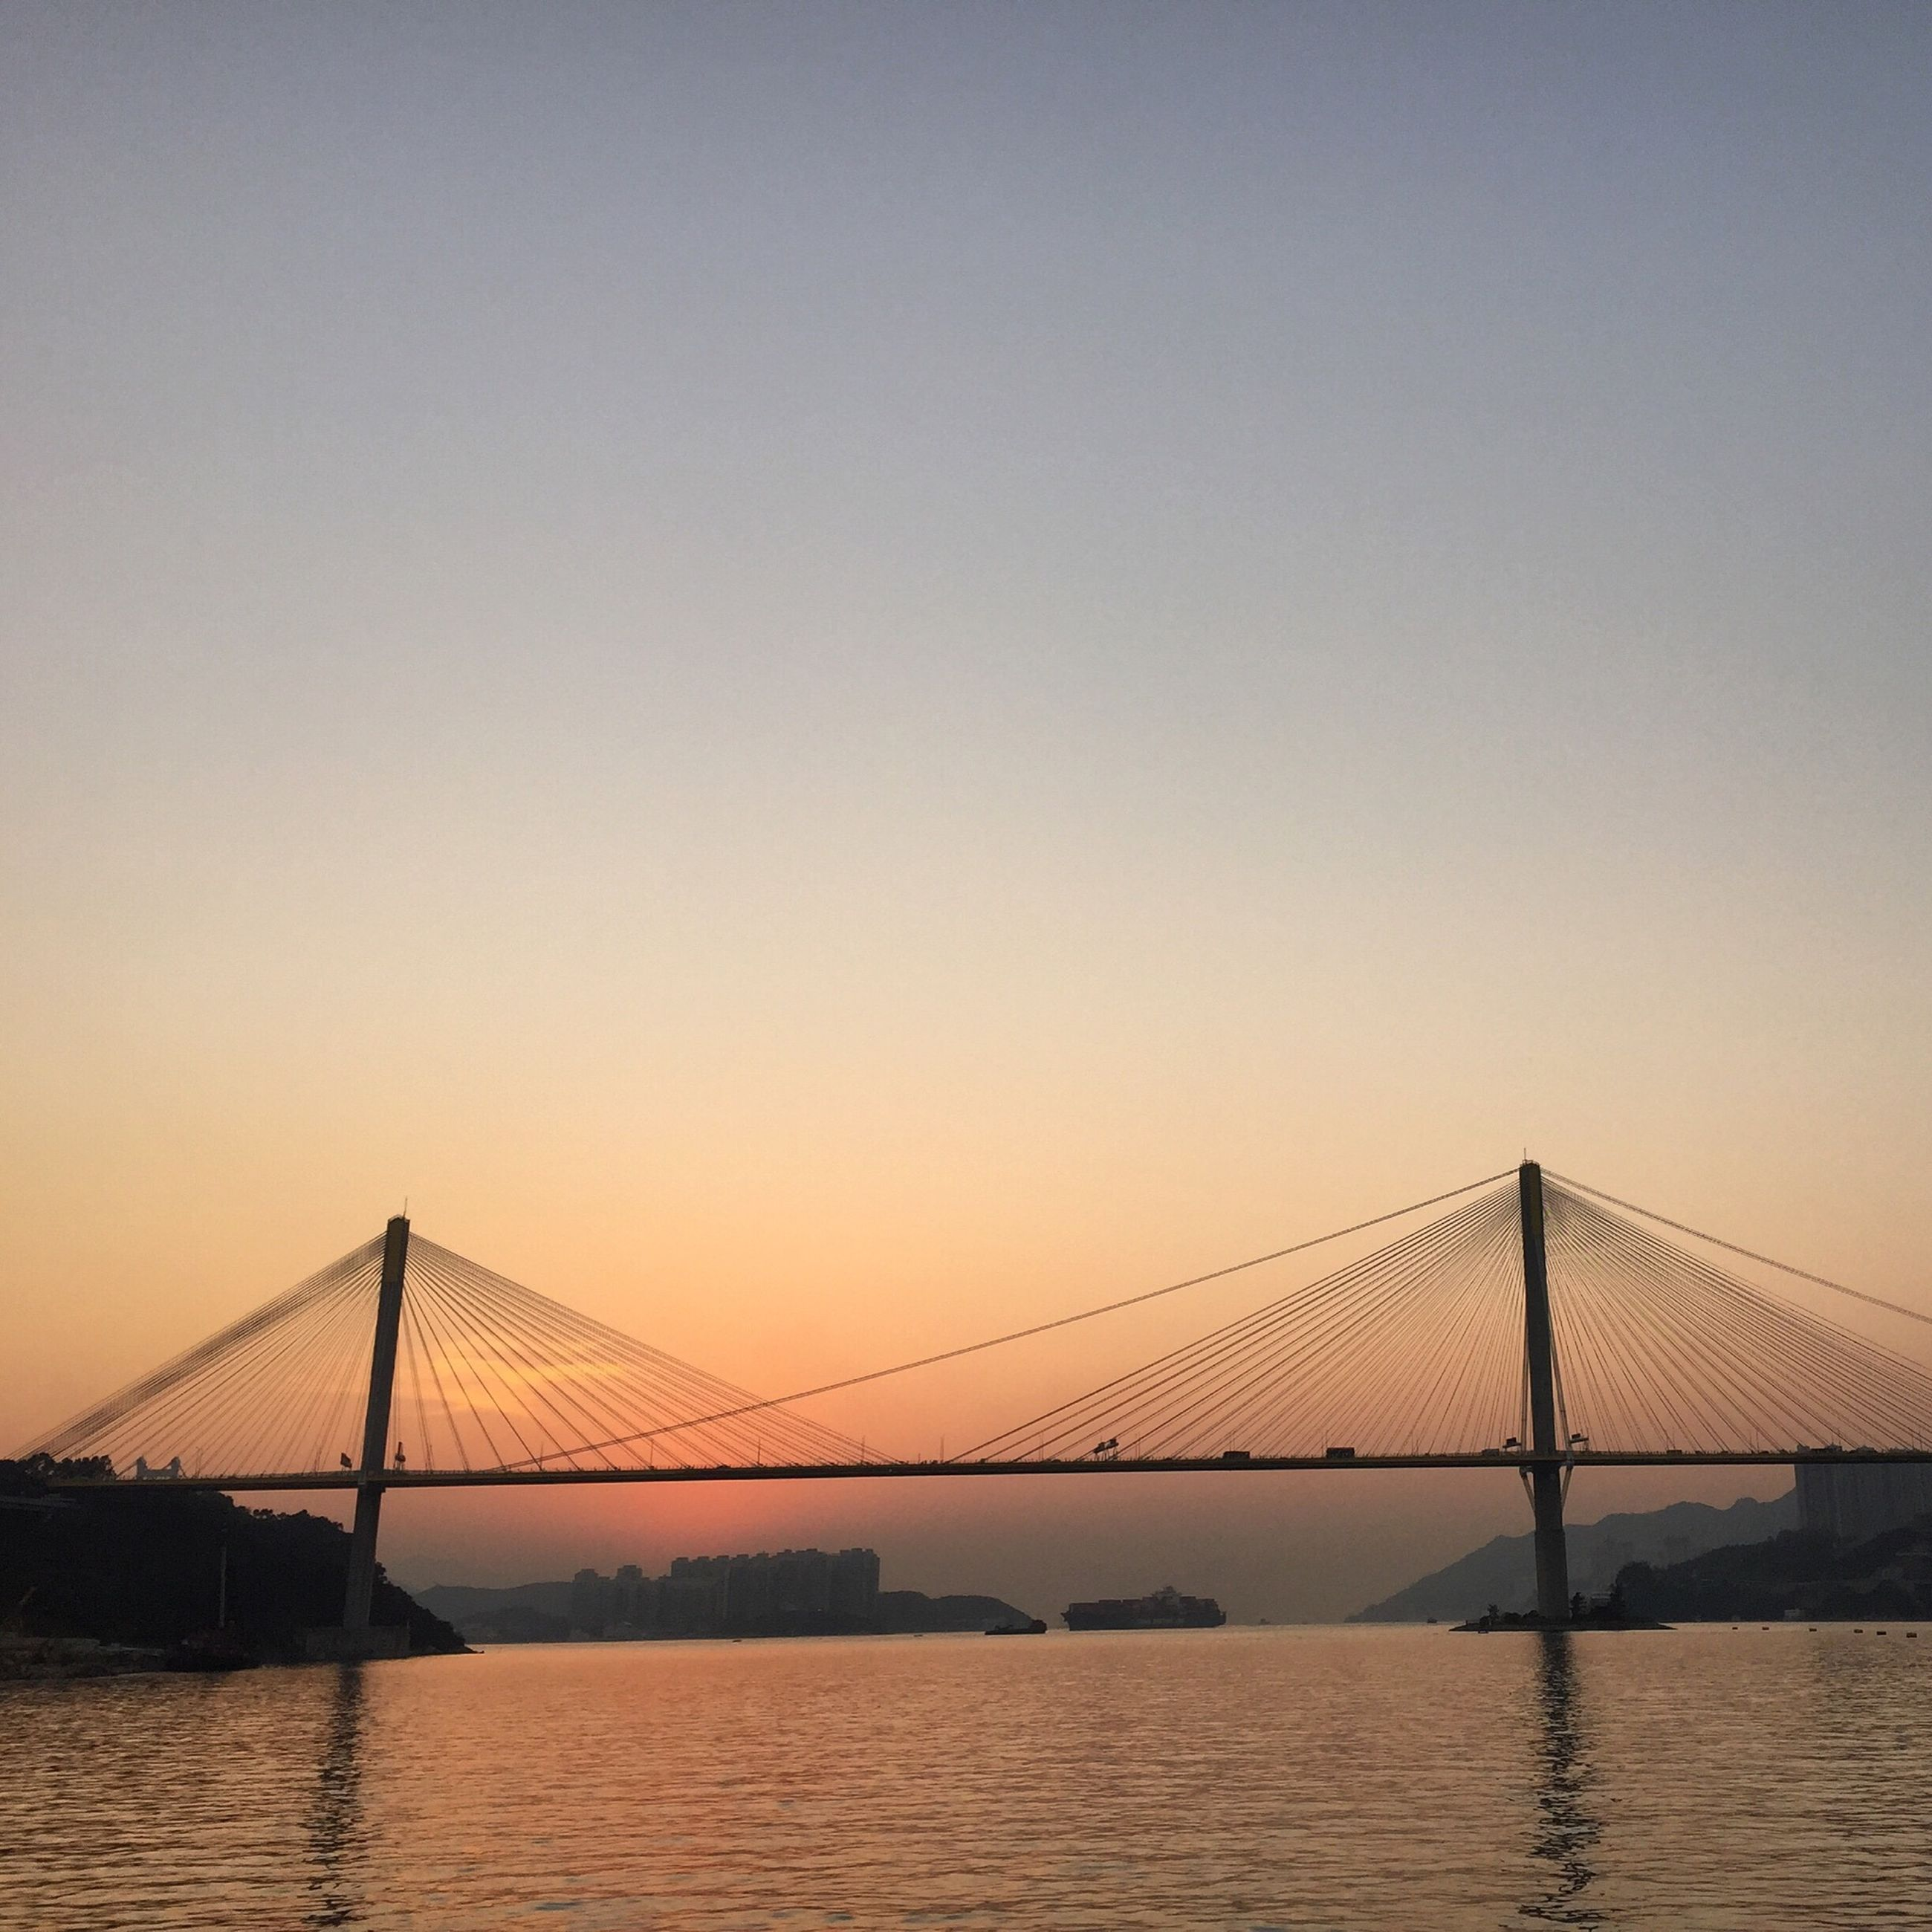 connection, bridge - man made structure, water, engineering, suspension bridge, built structure, bridge, architecture, sunset, waterfront, transportation, river, clear sky, travel destinations, sea, tranquility, silhouette, copy space, tranquil scene, long